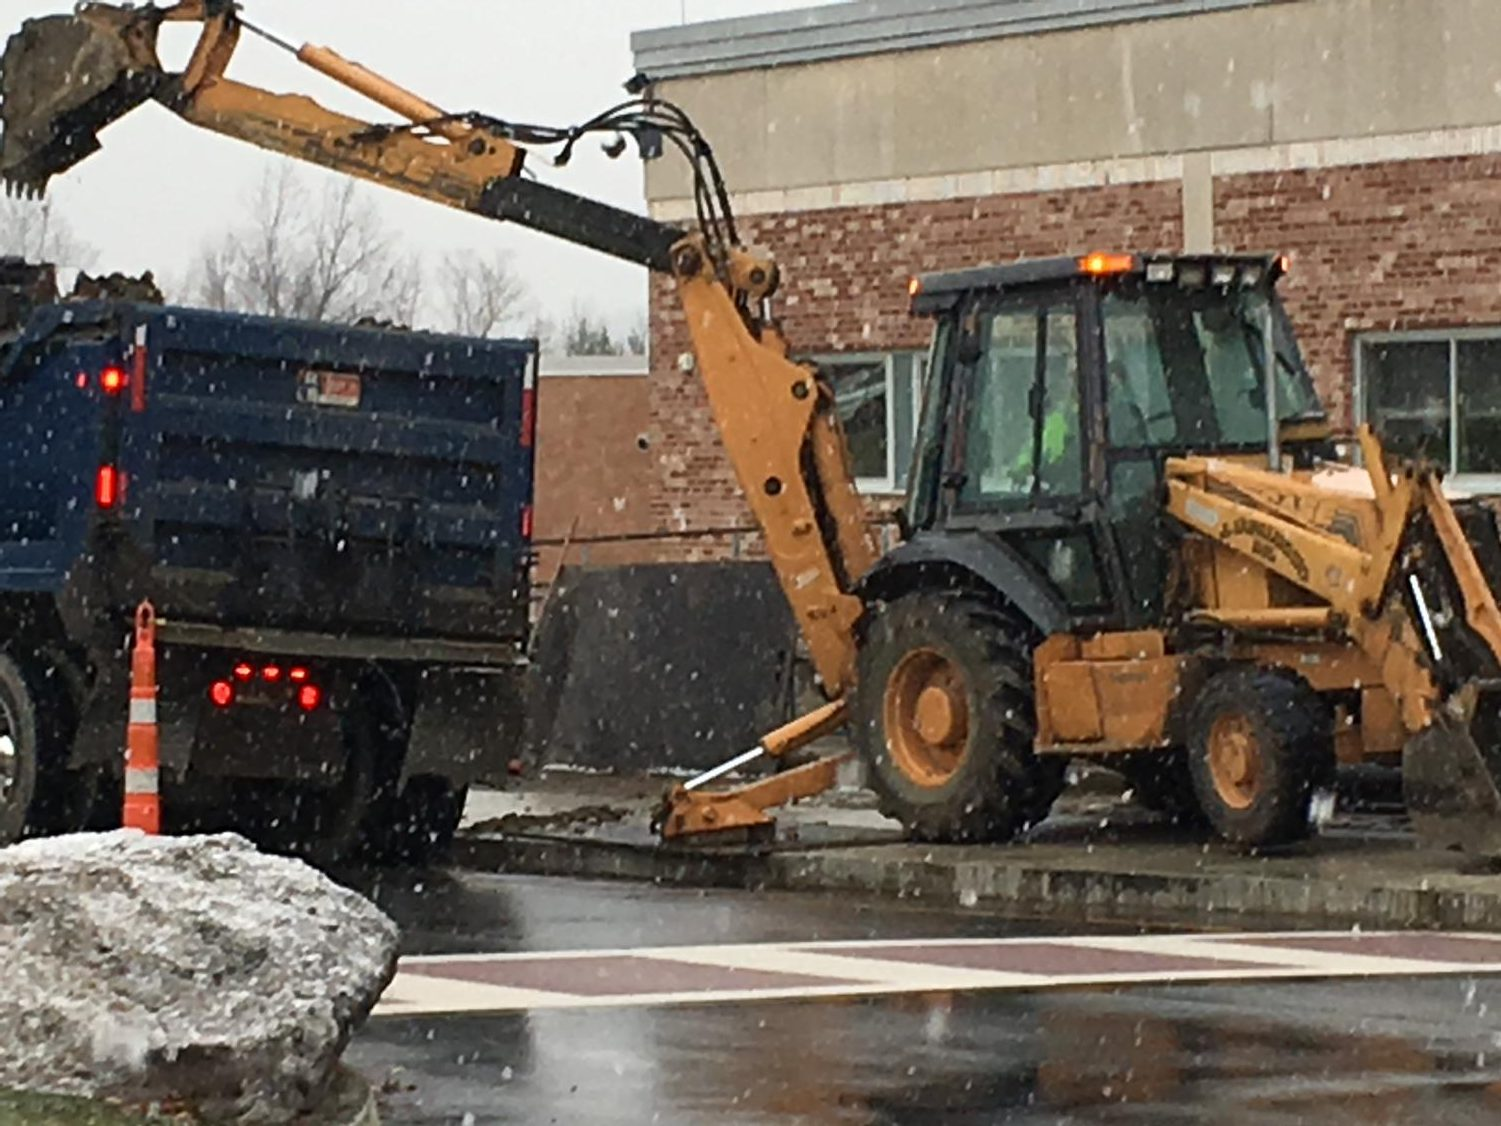 A city building crew works on repairing a water leak that is affecting Eric Savoyski's robotics classroom. The crew has had to excavate to install proper drainage infrastructure.